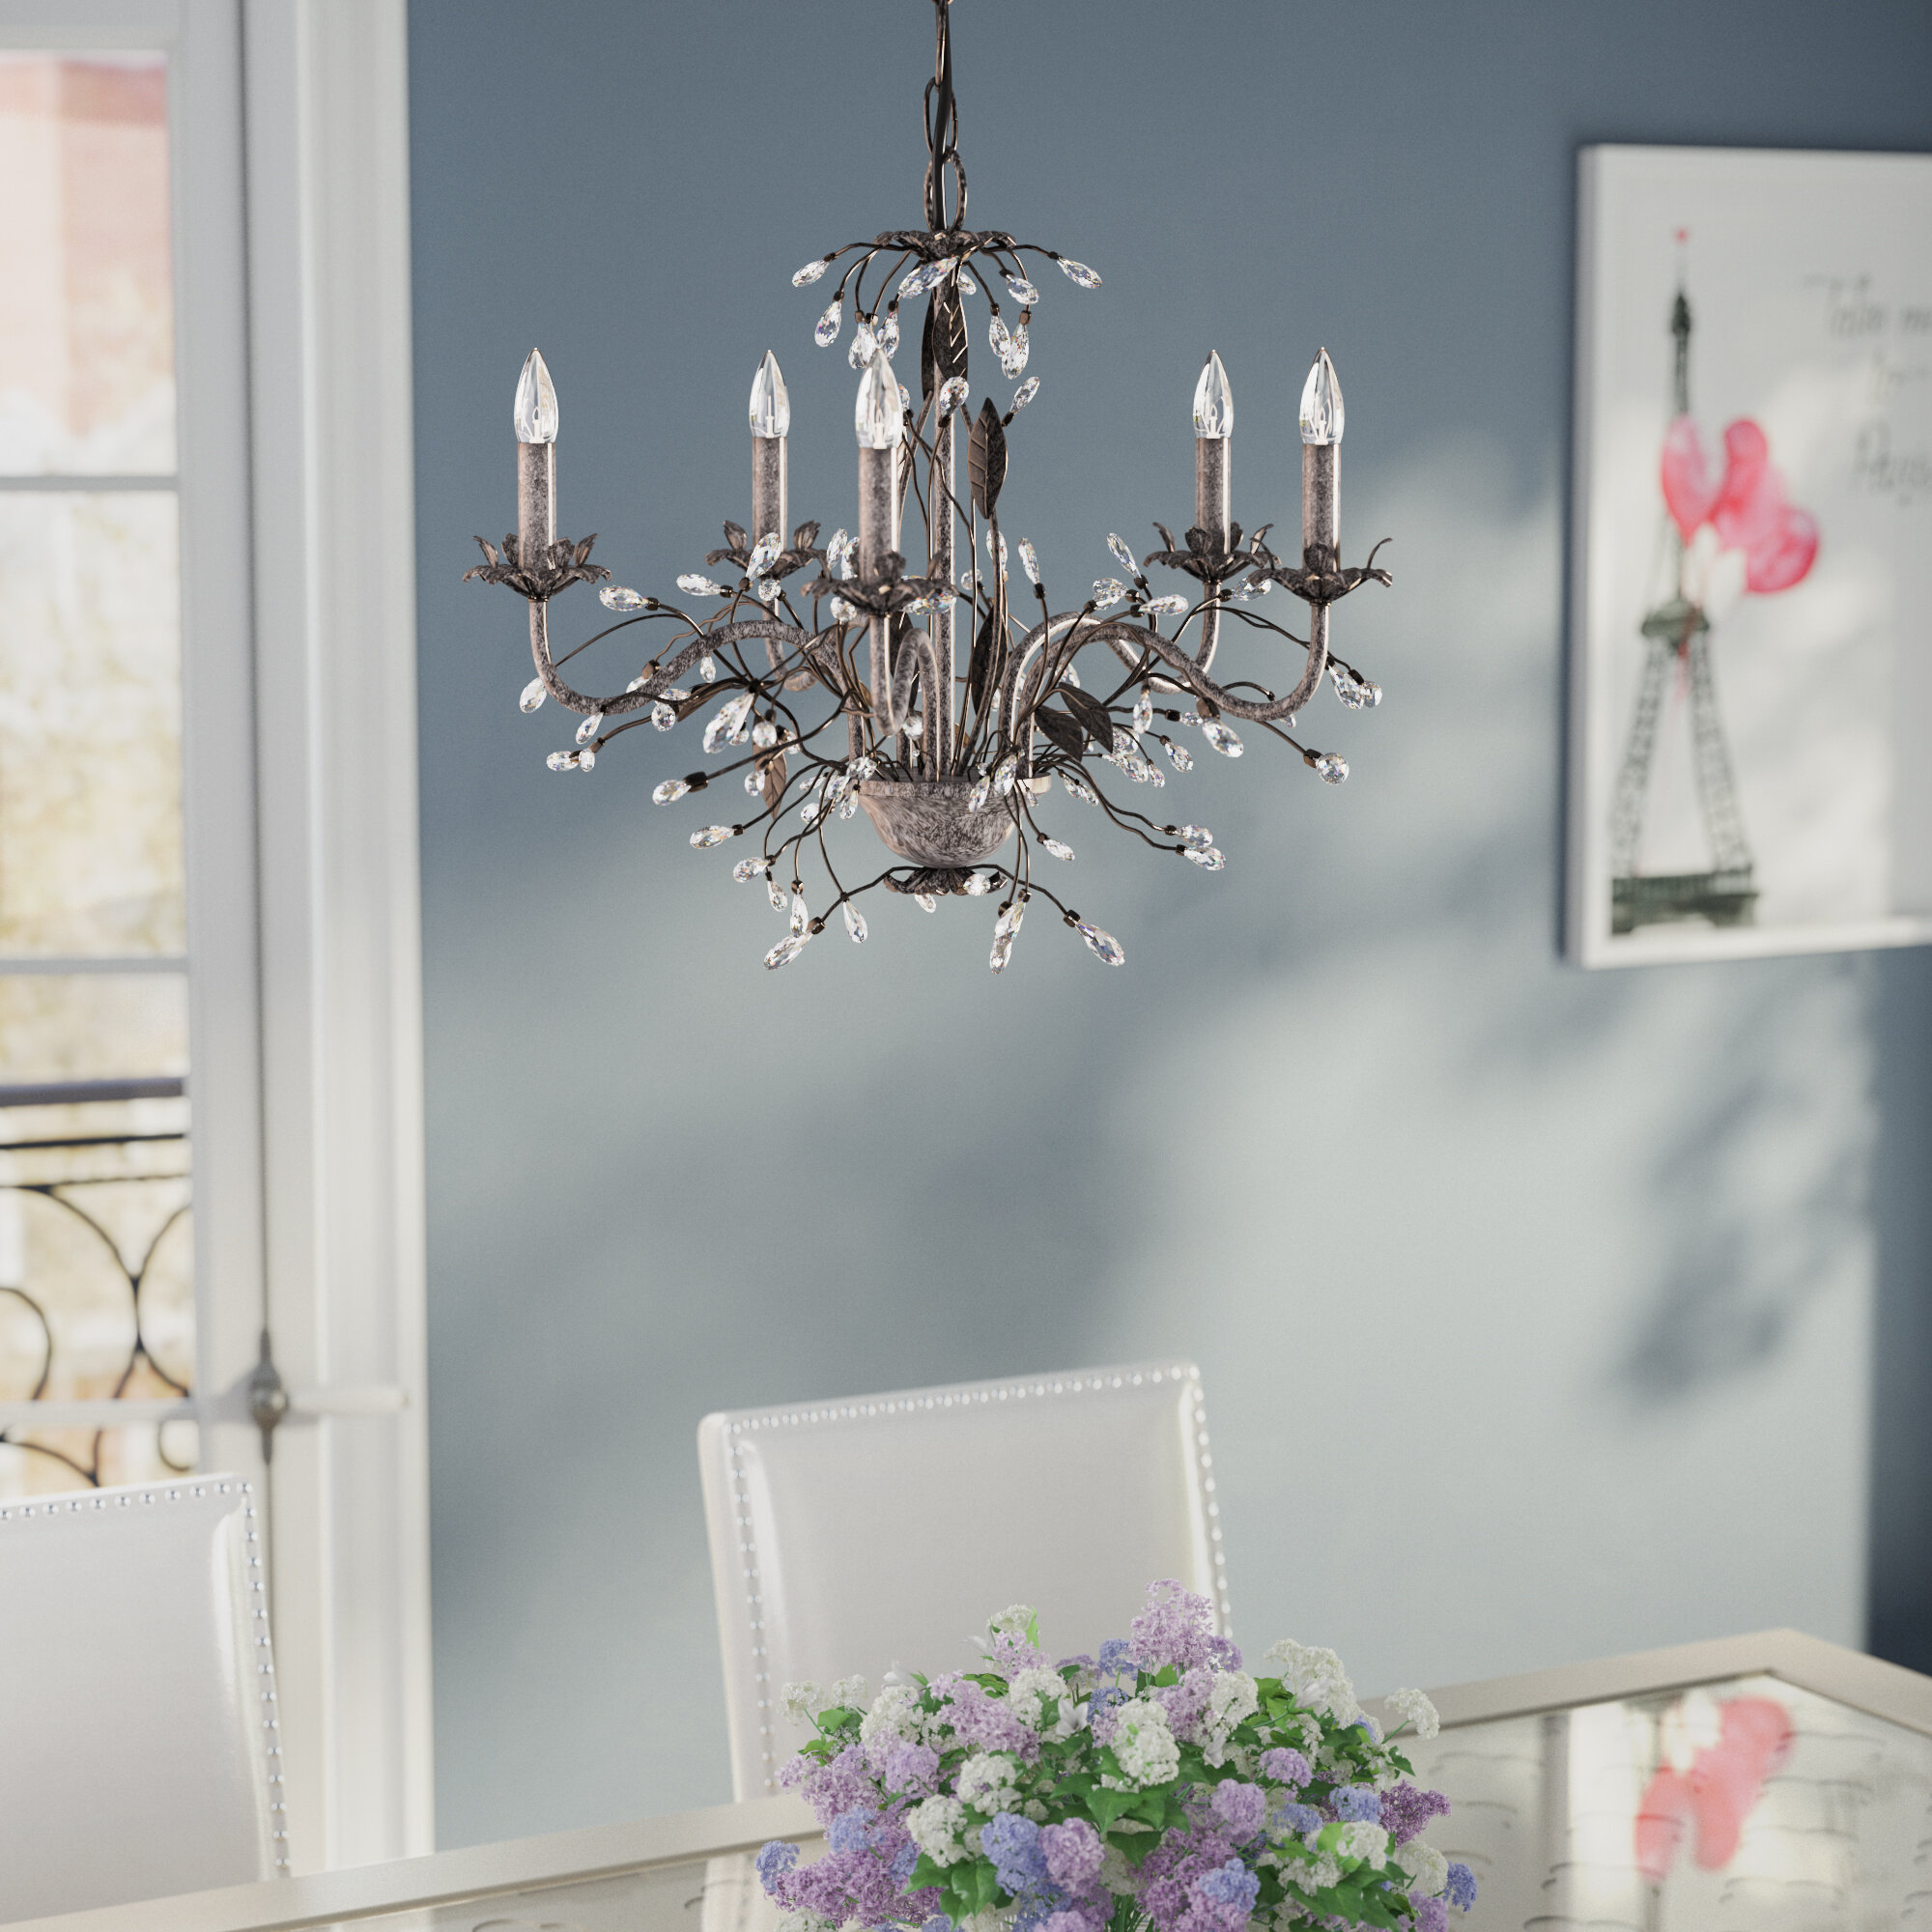 House of Hampton 5 Light Candle Style Chandelier & Reviews